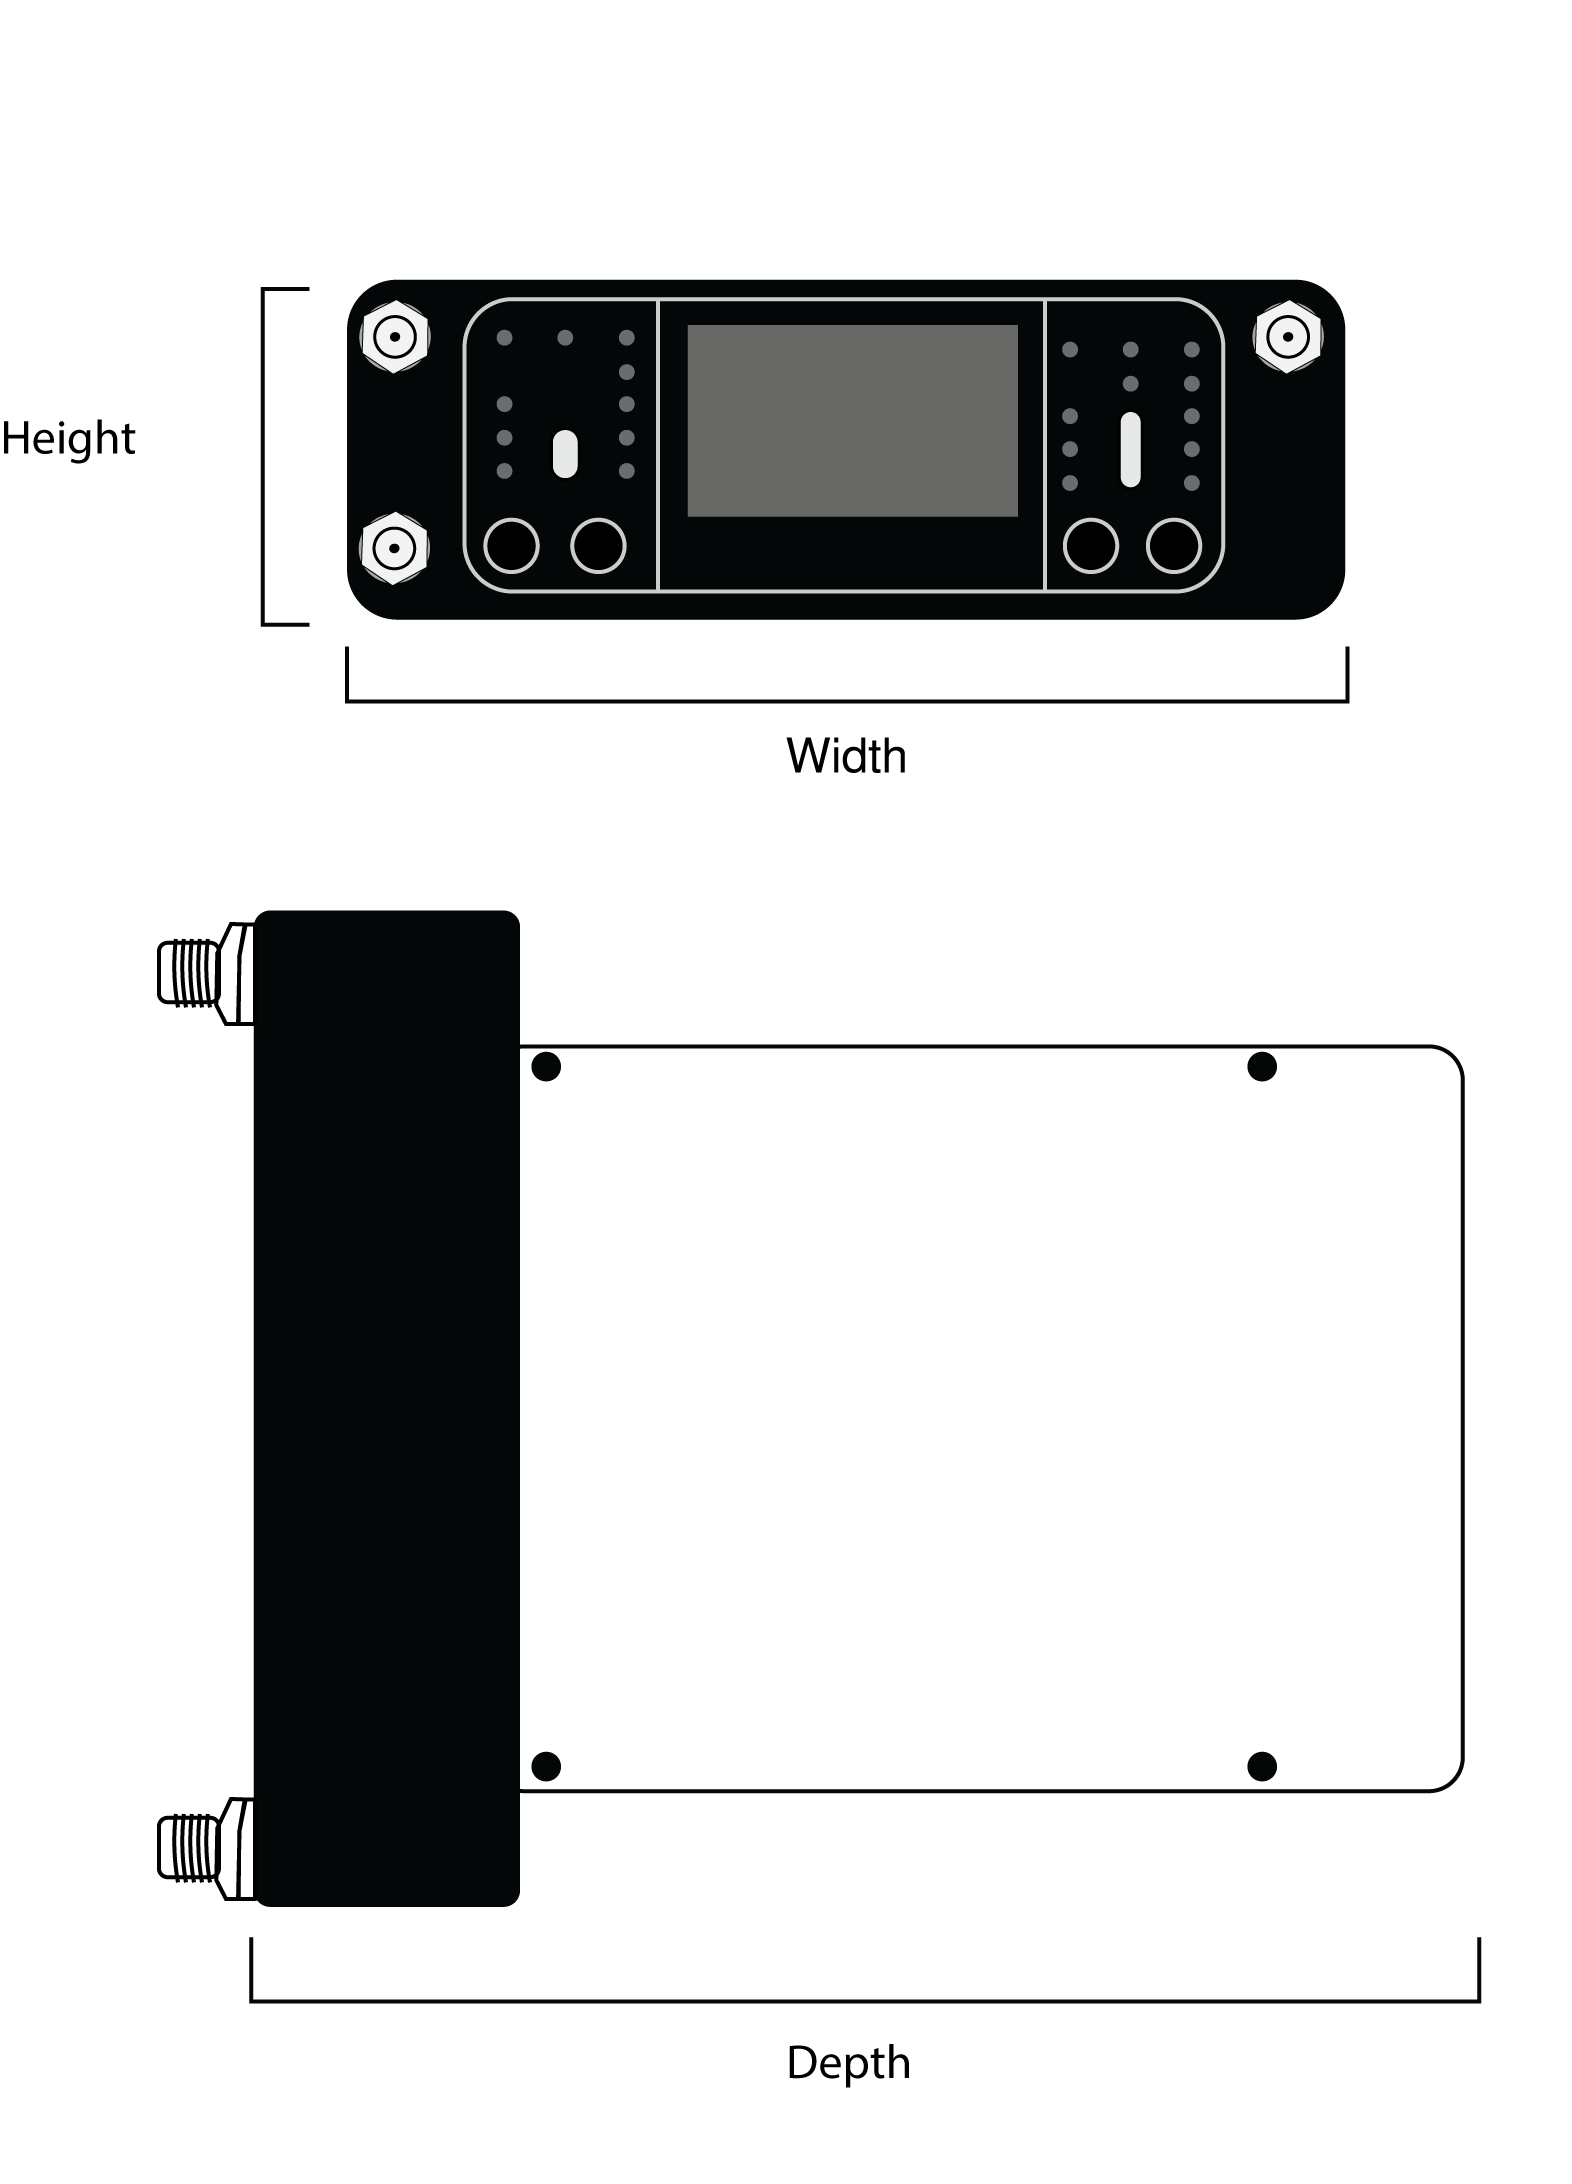 """Dimensional drawing of ADX5D receiver, specifying """"height"""" as the top-to-bottom measurement of the front place, """"width"""" as the side-to-side measurement of the front plate, and """"depth"""" as the front-to-back measurement of the receiver with no backplate attached."""